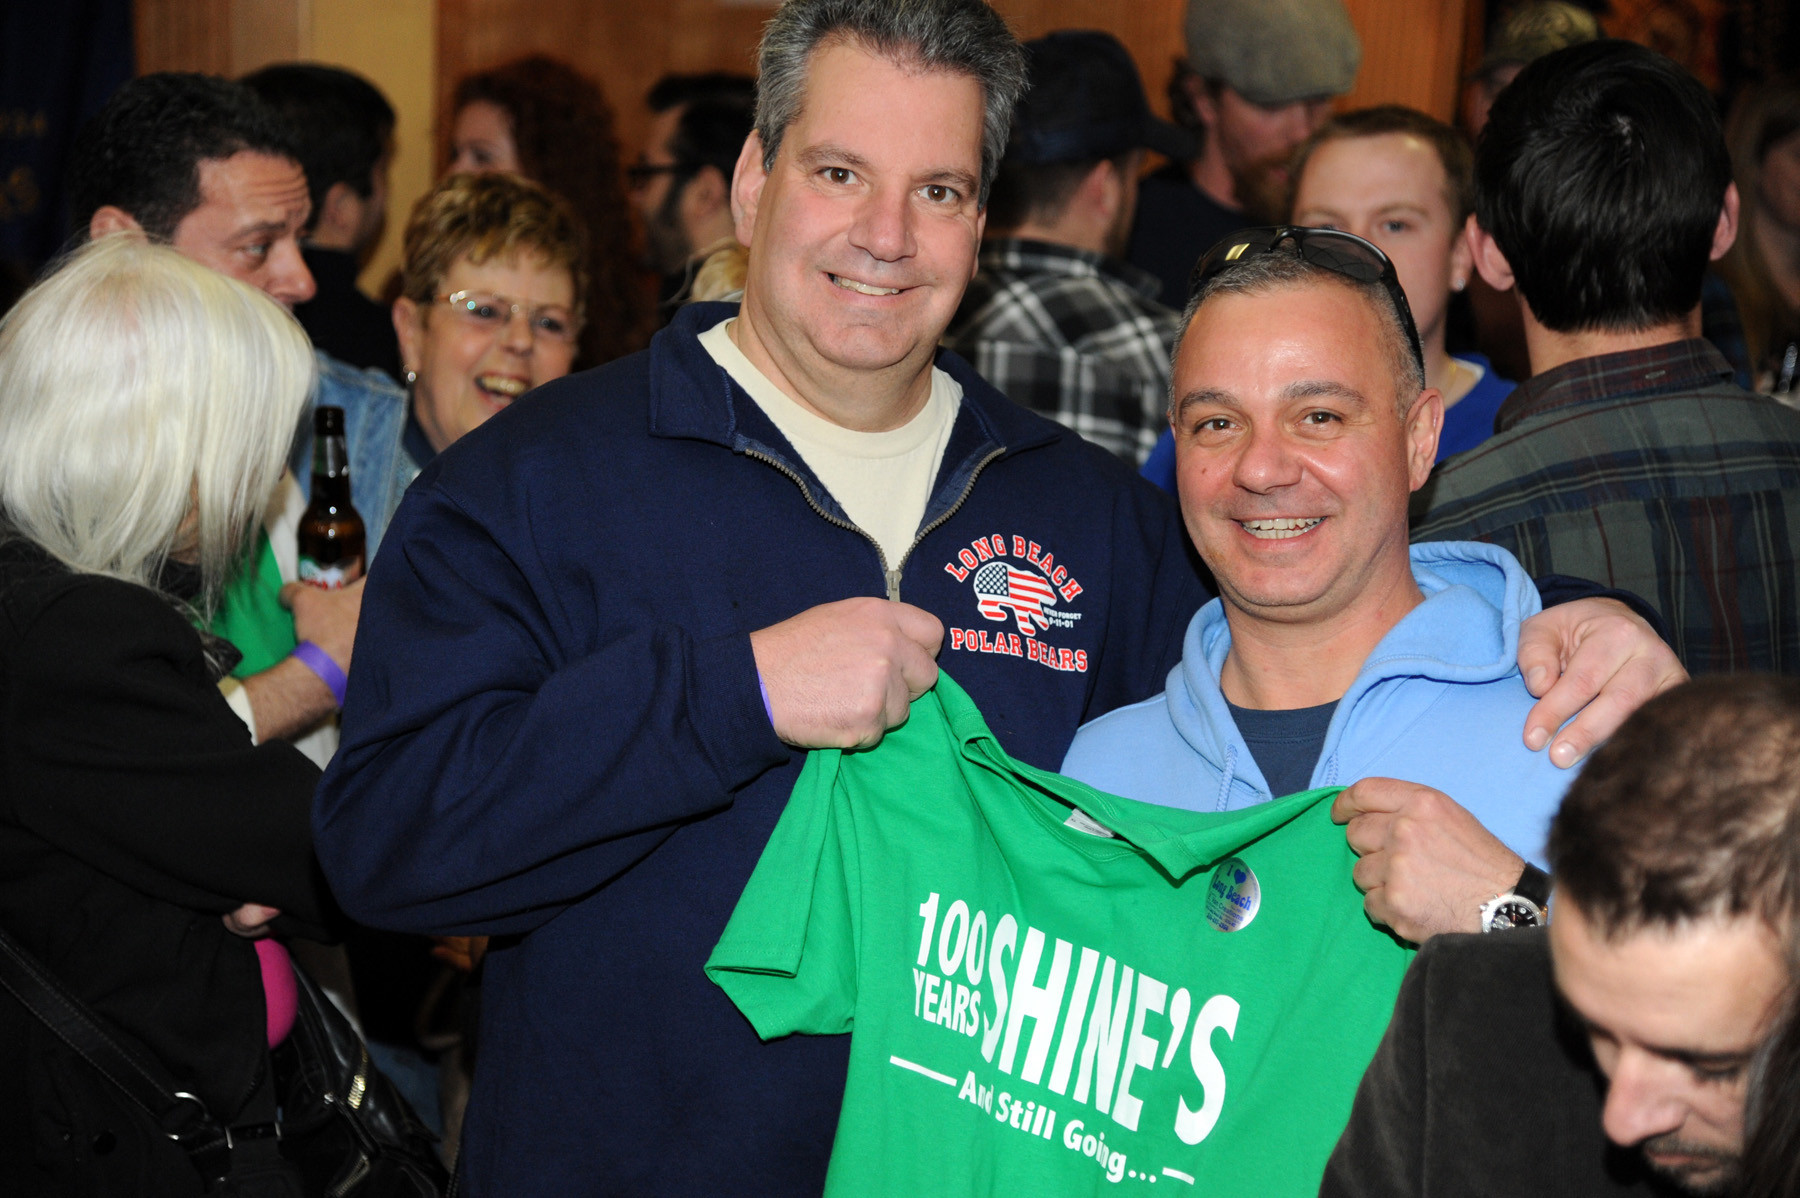 Bill Holtmeyer and Paul Montasano showed their love for Shine's with a signature T-shirt.